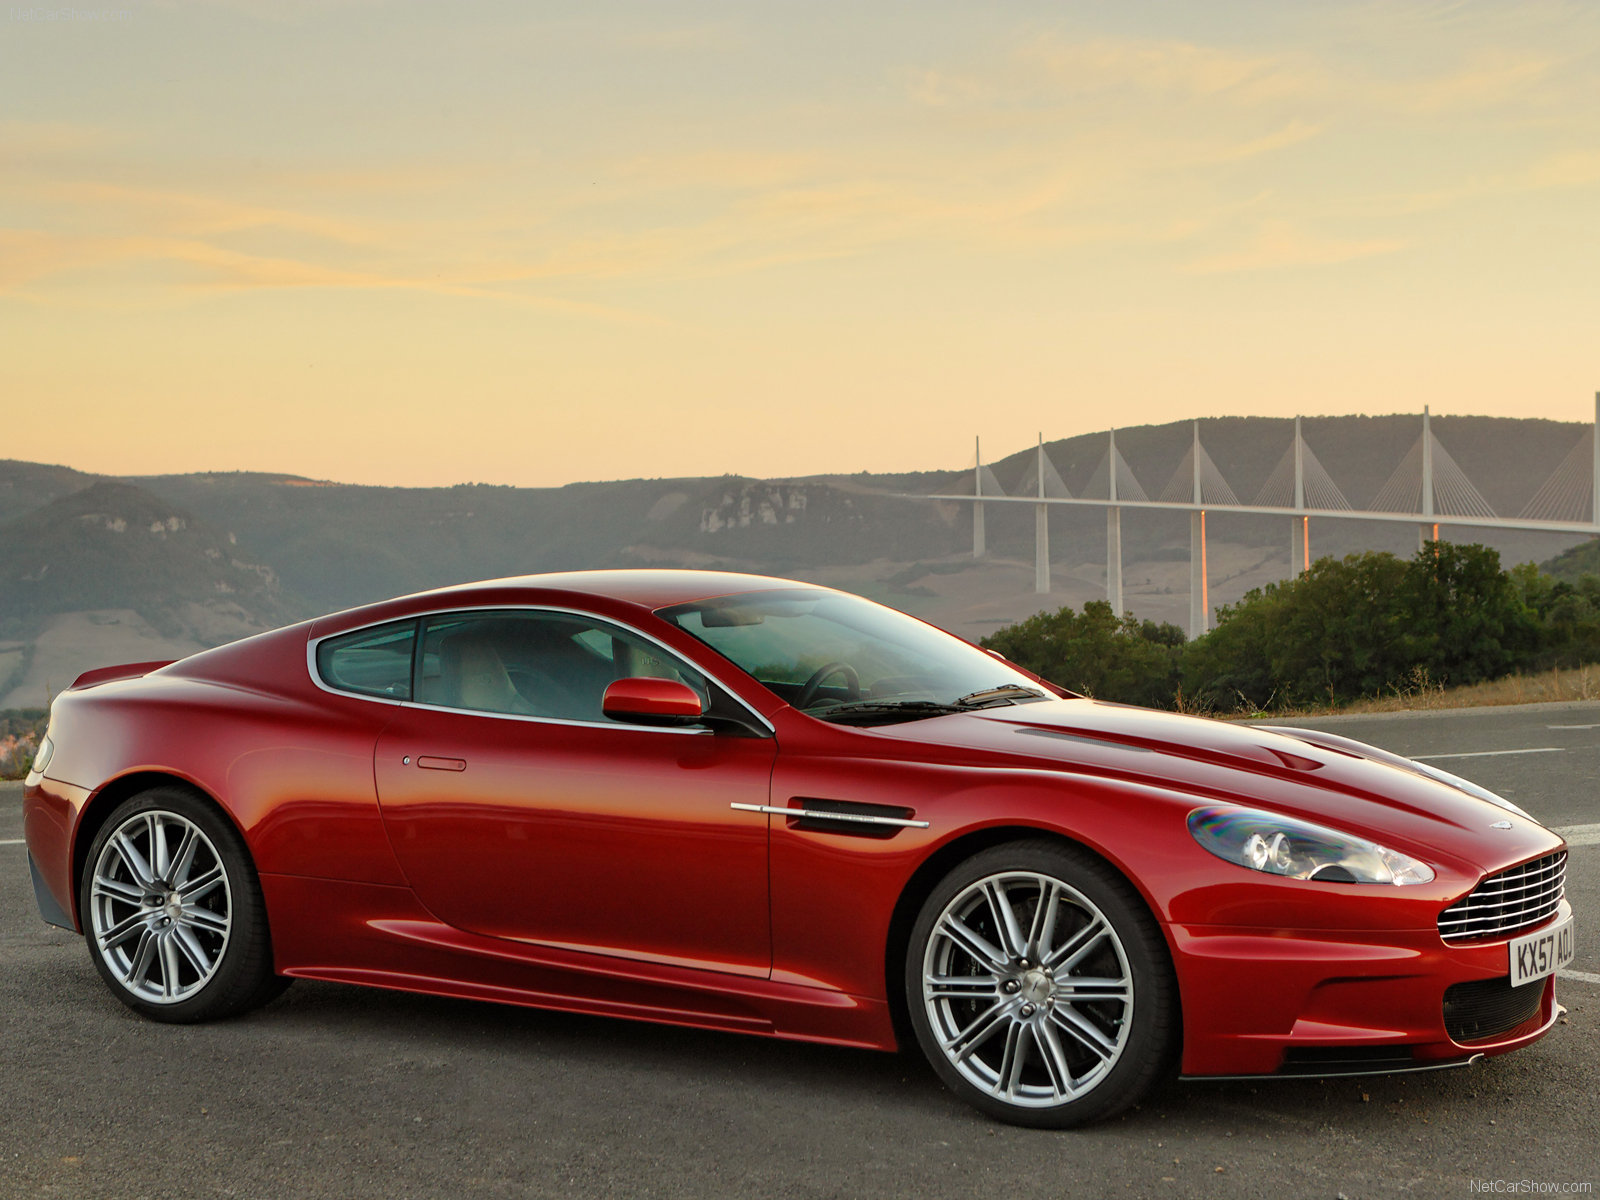 Aston Martin Dbs Infa Red Picture 49772 Aston Martin Photo Gallery Carsbase Com